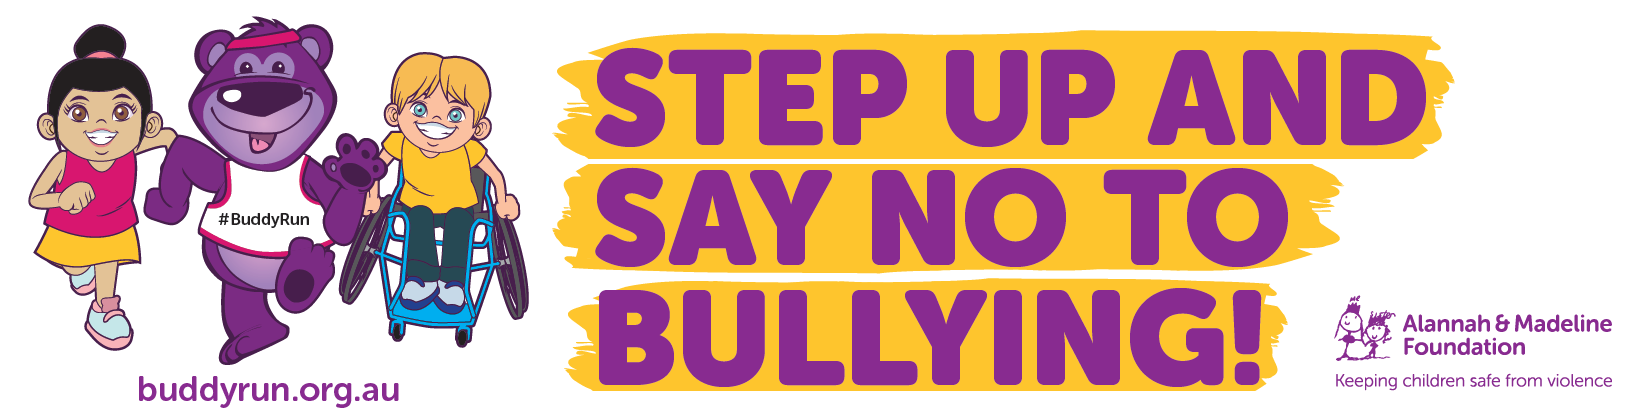 Join us for the Buddy Run this October and say no to bullying!